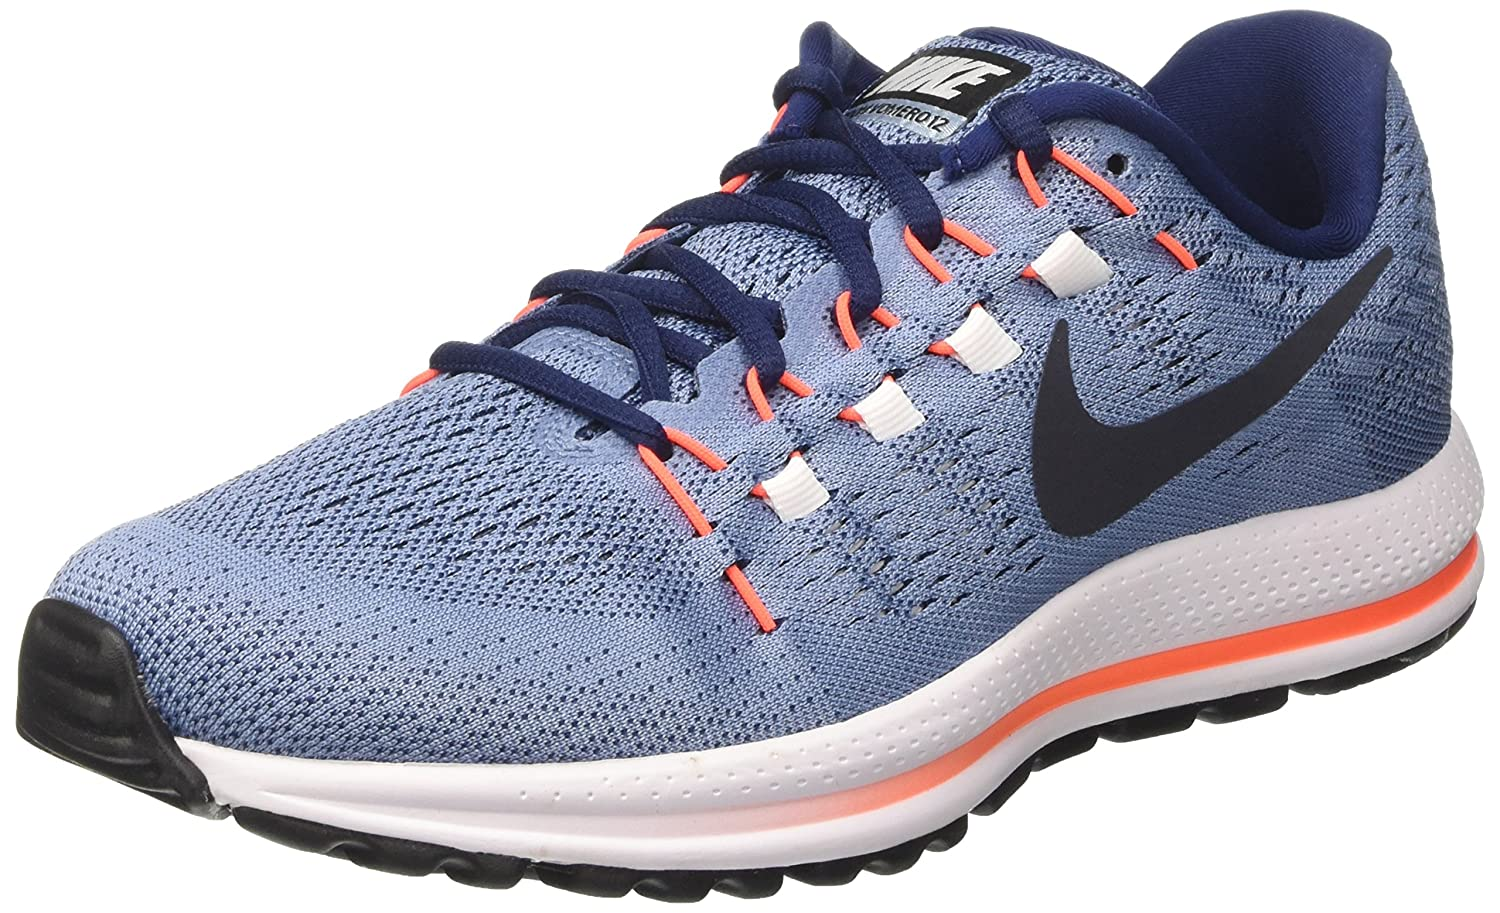 74b57fc95d4 Nike Men s Air Zoom Vomero 12 Blue Running Shoes(863762-403) (UK-7 (US-8))   Buy Online at Low Prices in India - Amazon.in